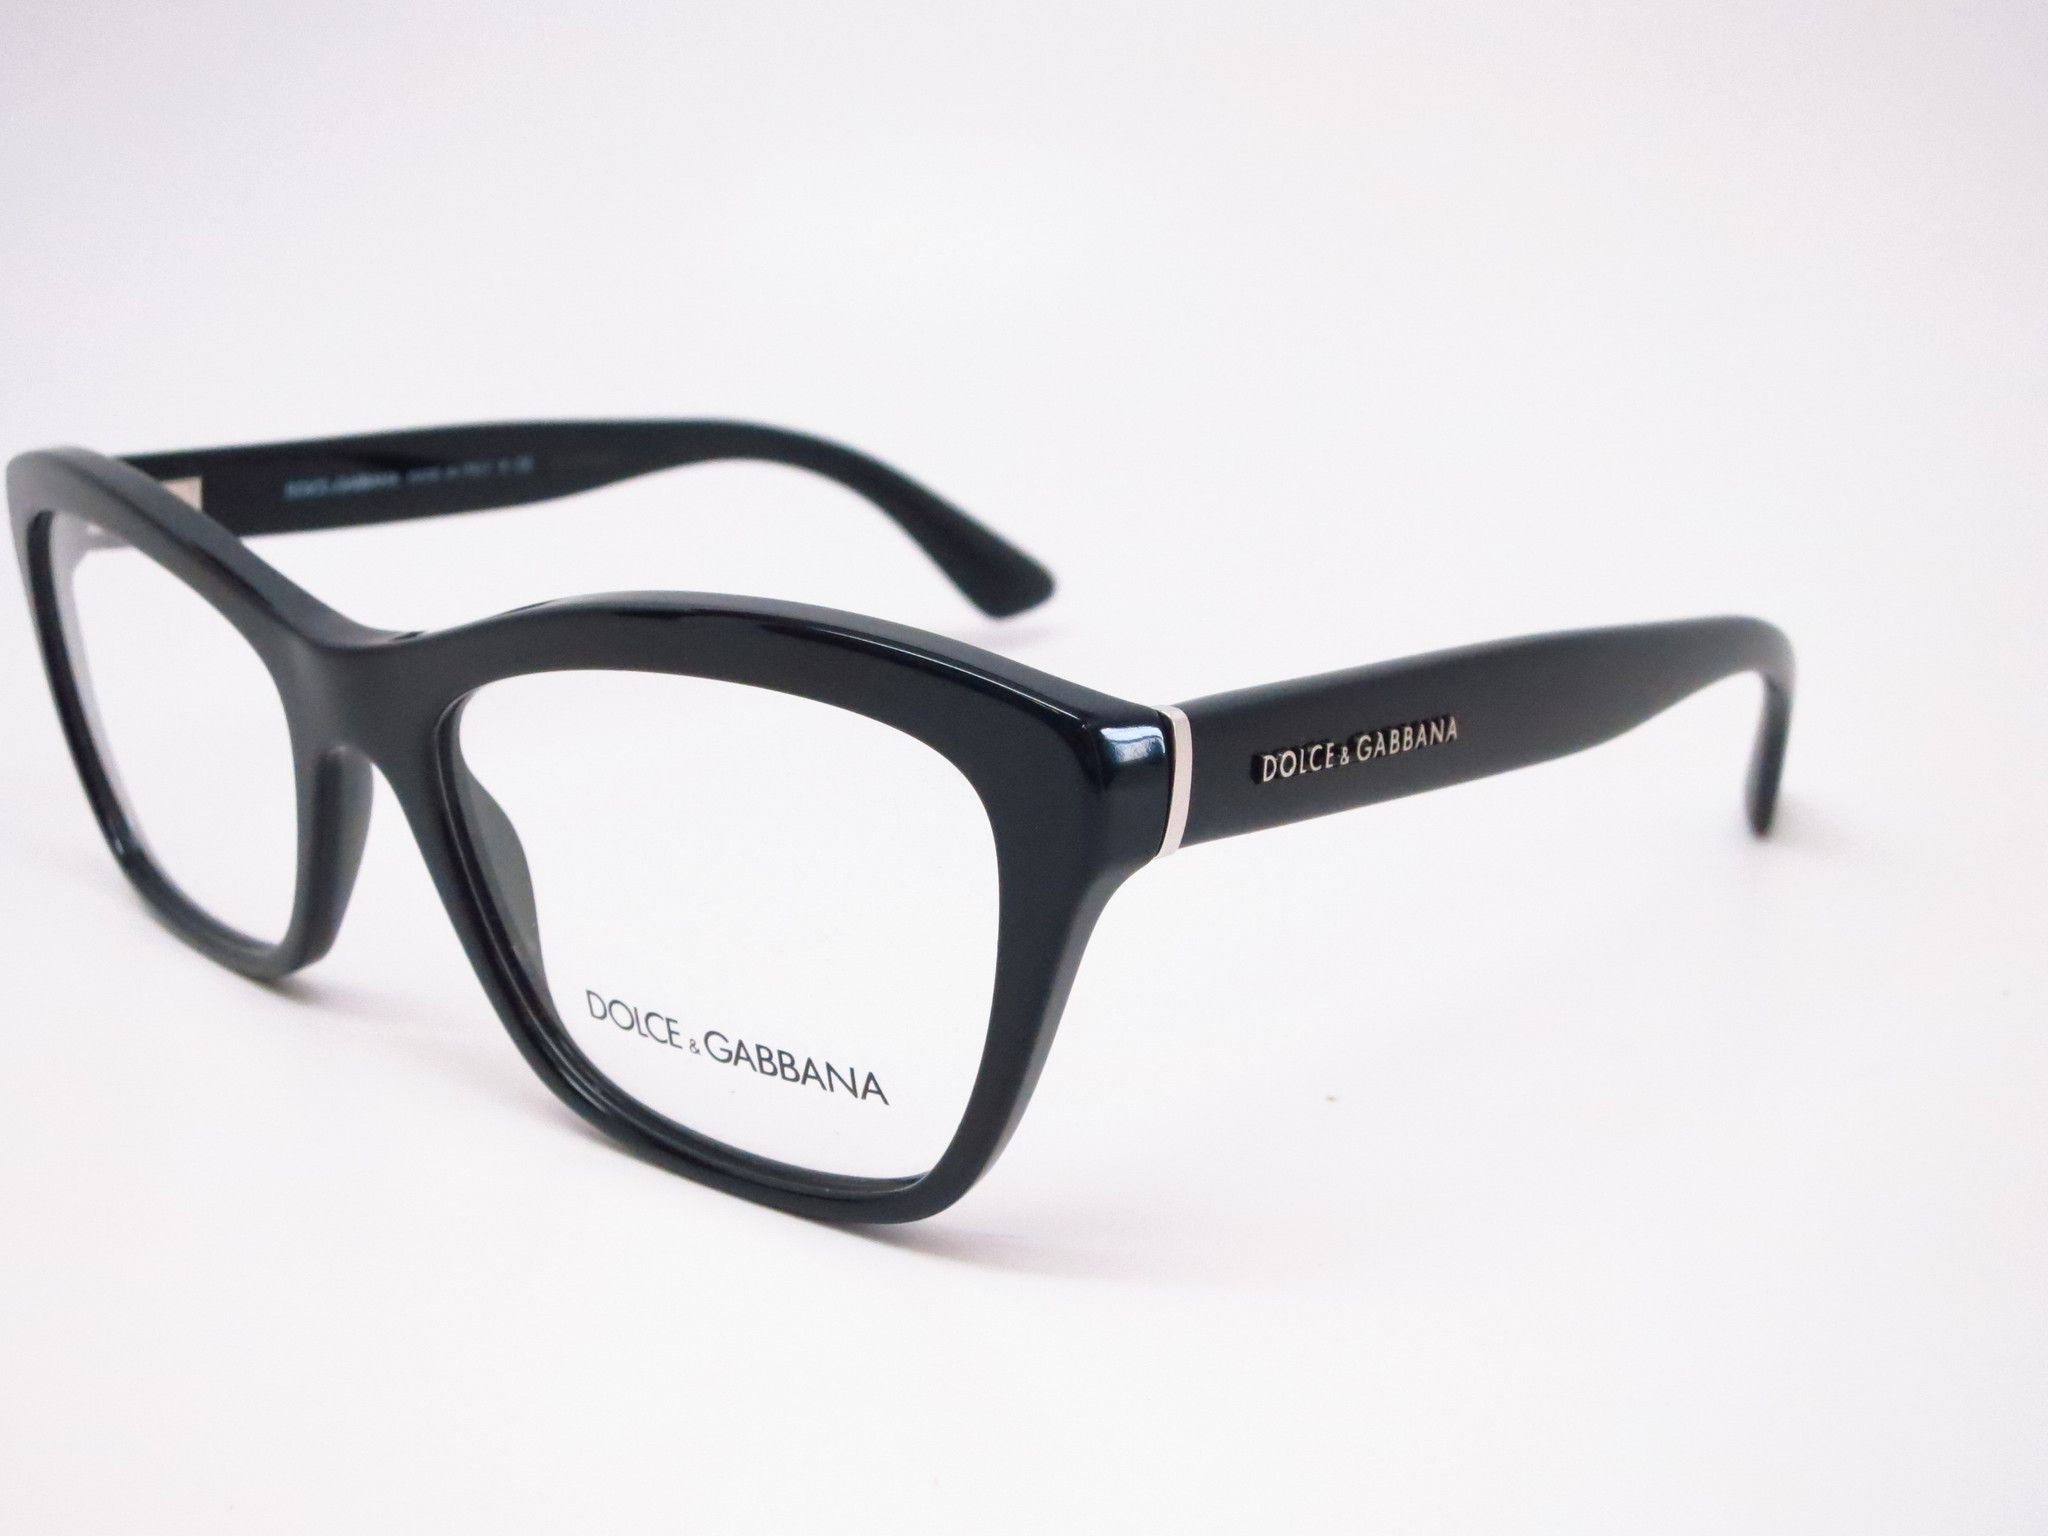 c02ba5a30fc Features of the Dolce   Gabbana DG 3198 - Acetate frames with a gloss  finish -